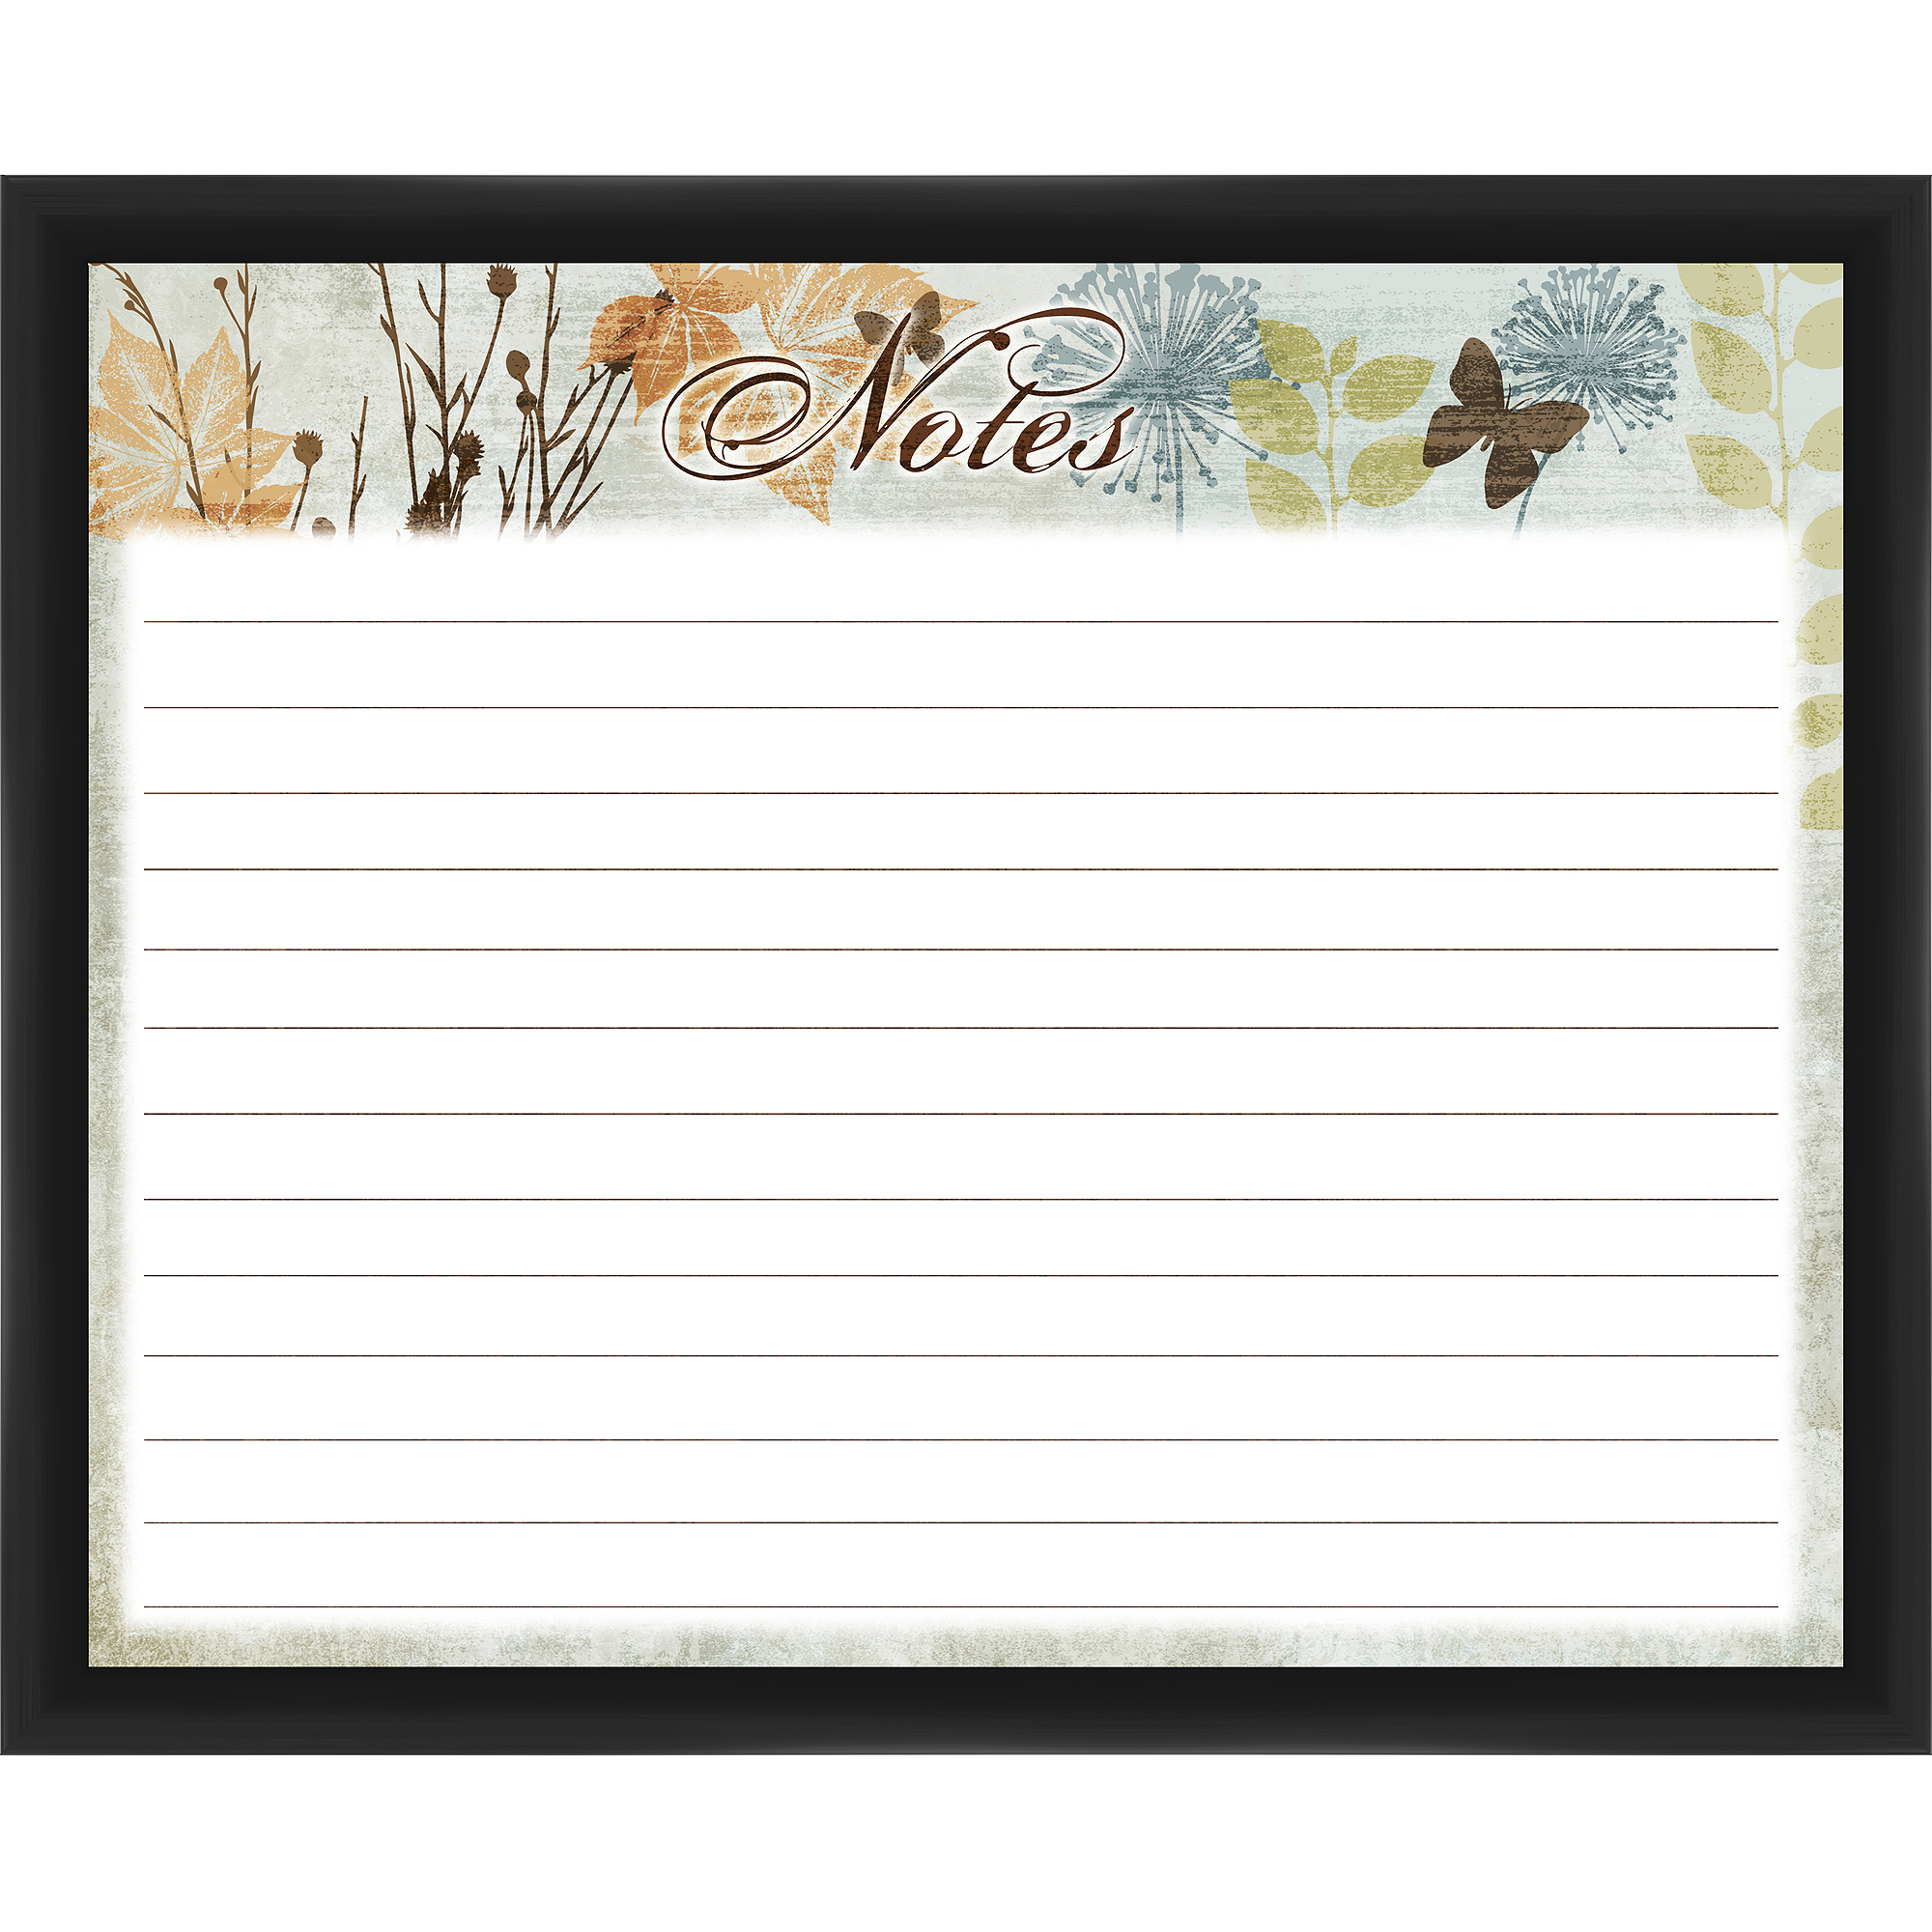 Grain Notes Black Memoboard